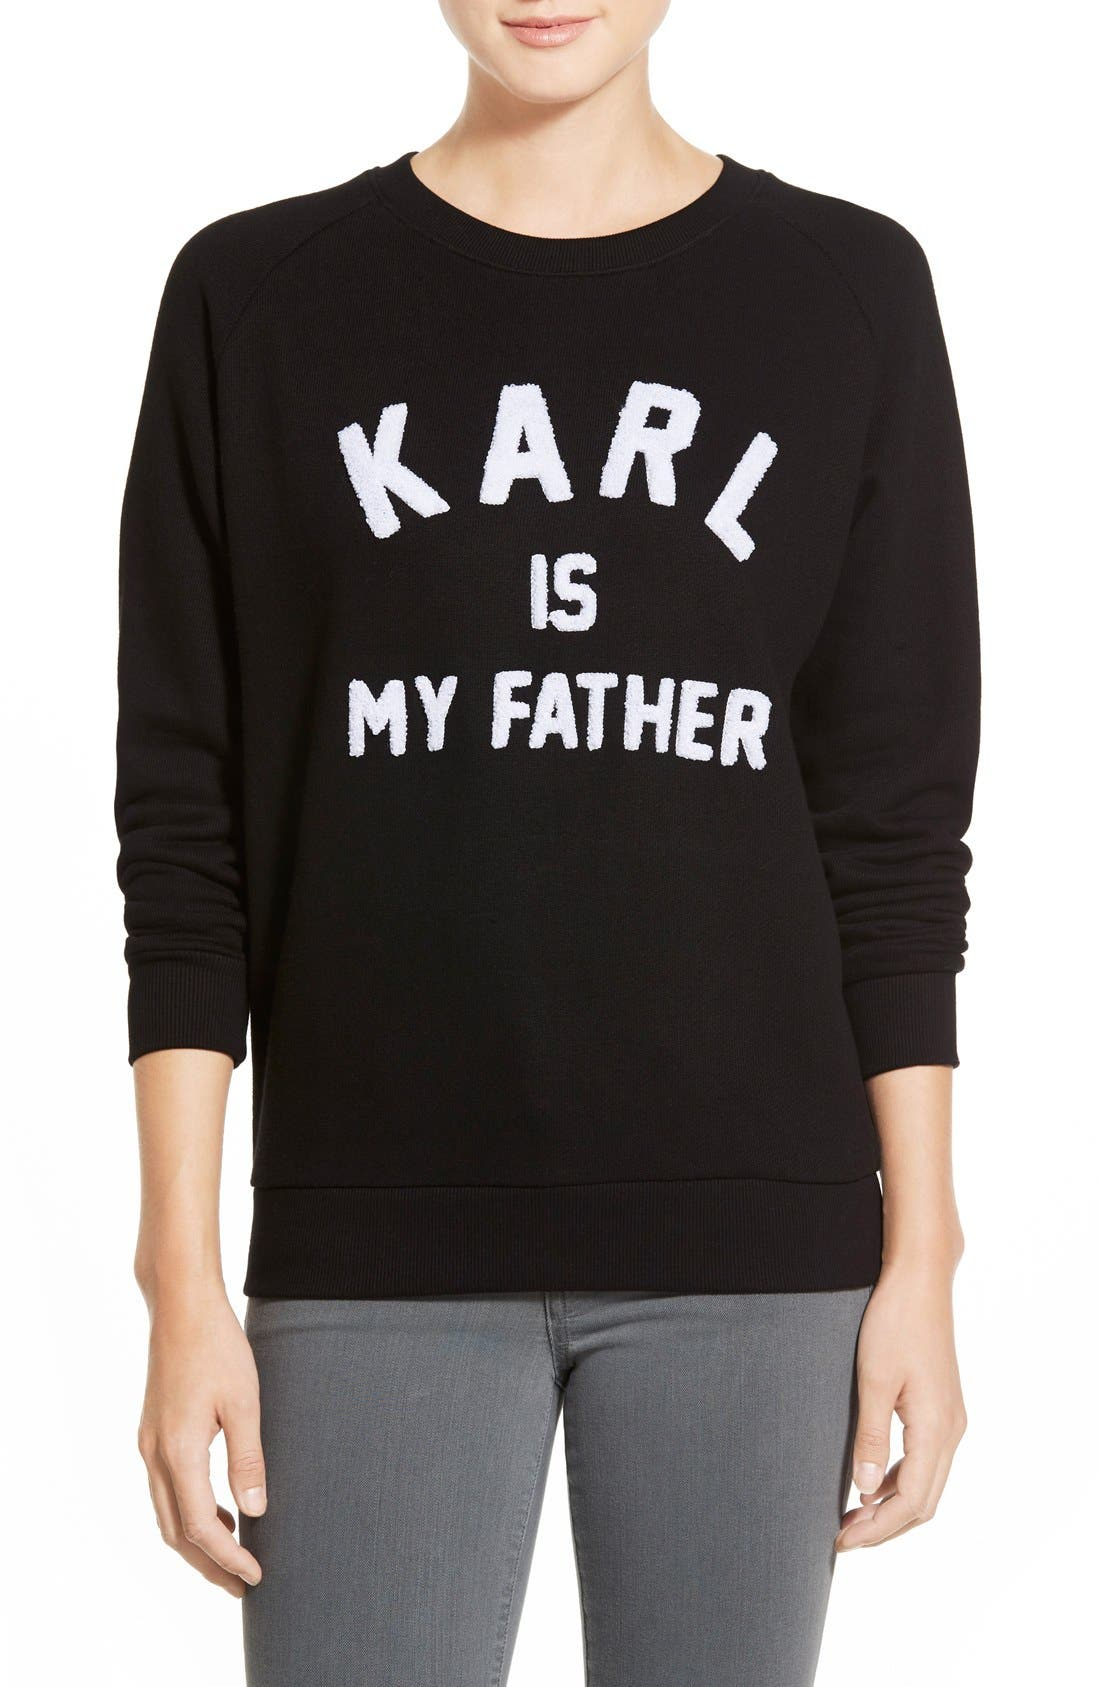 Main Image - ELEVENPARIS 'Karl is My Father' Fleece Pullover